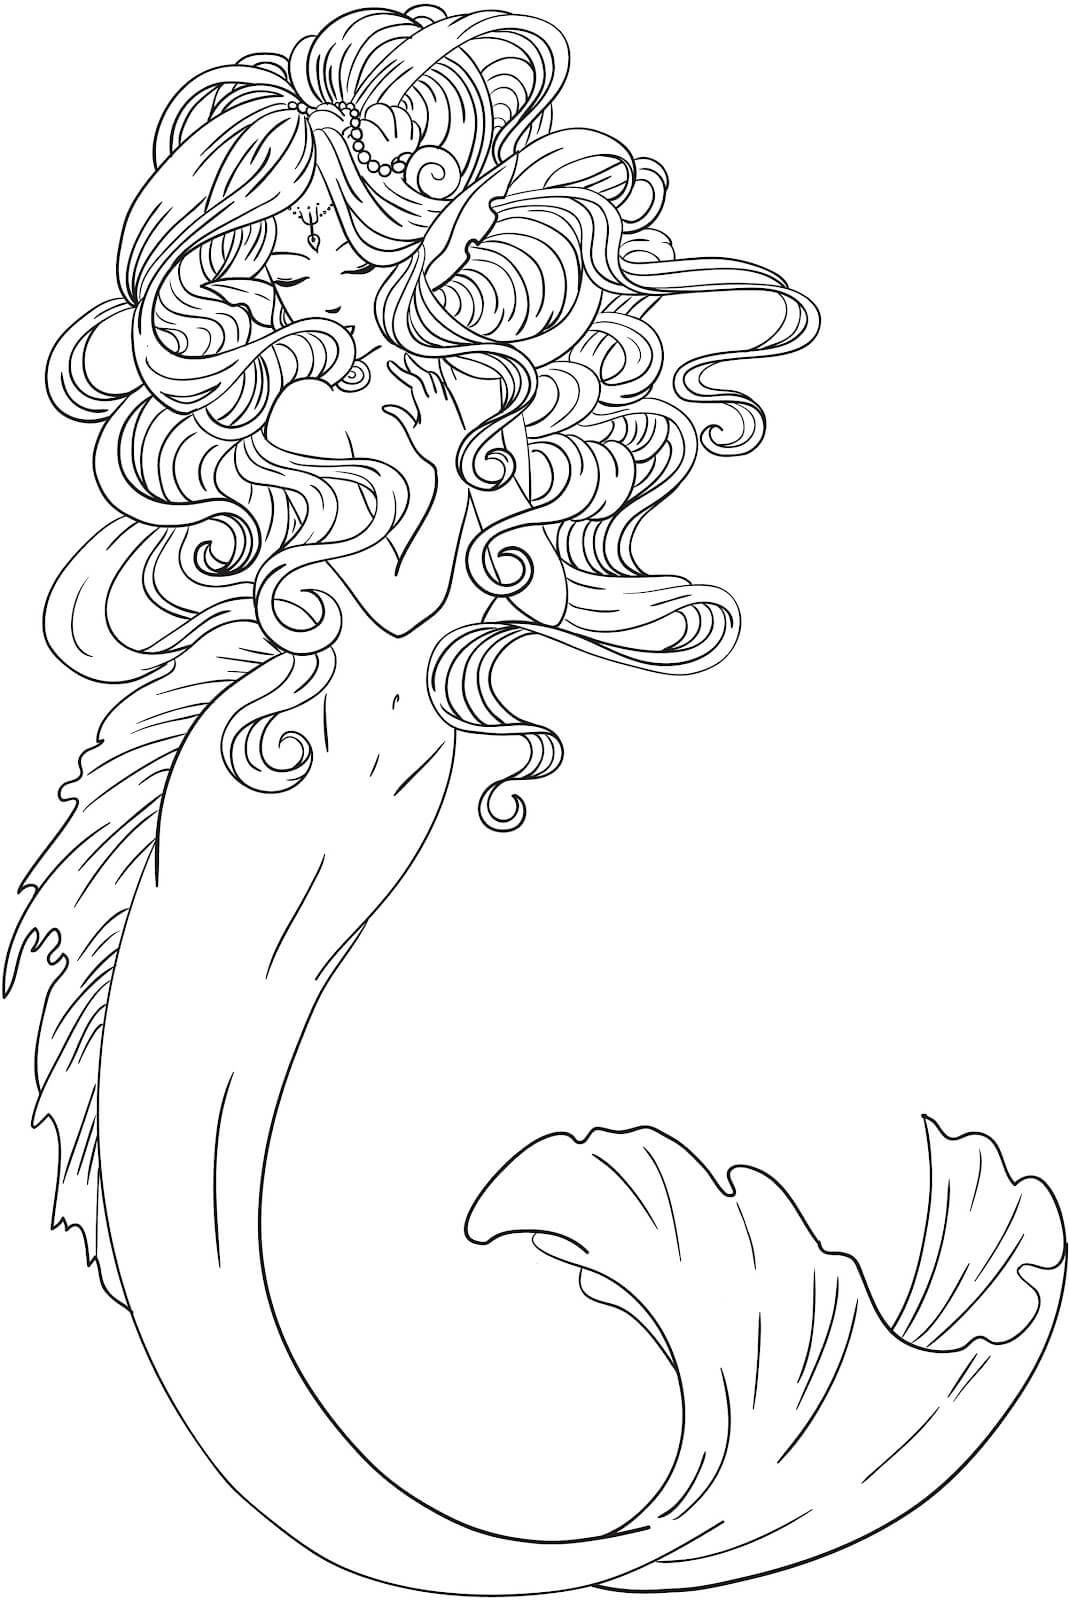 25 Best Mermaid Adult Coloring Pages For Adults Images On Coloring